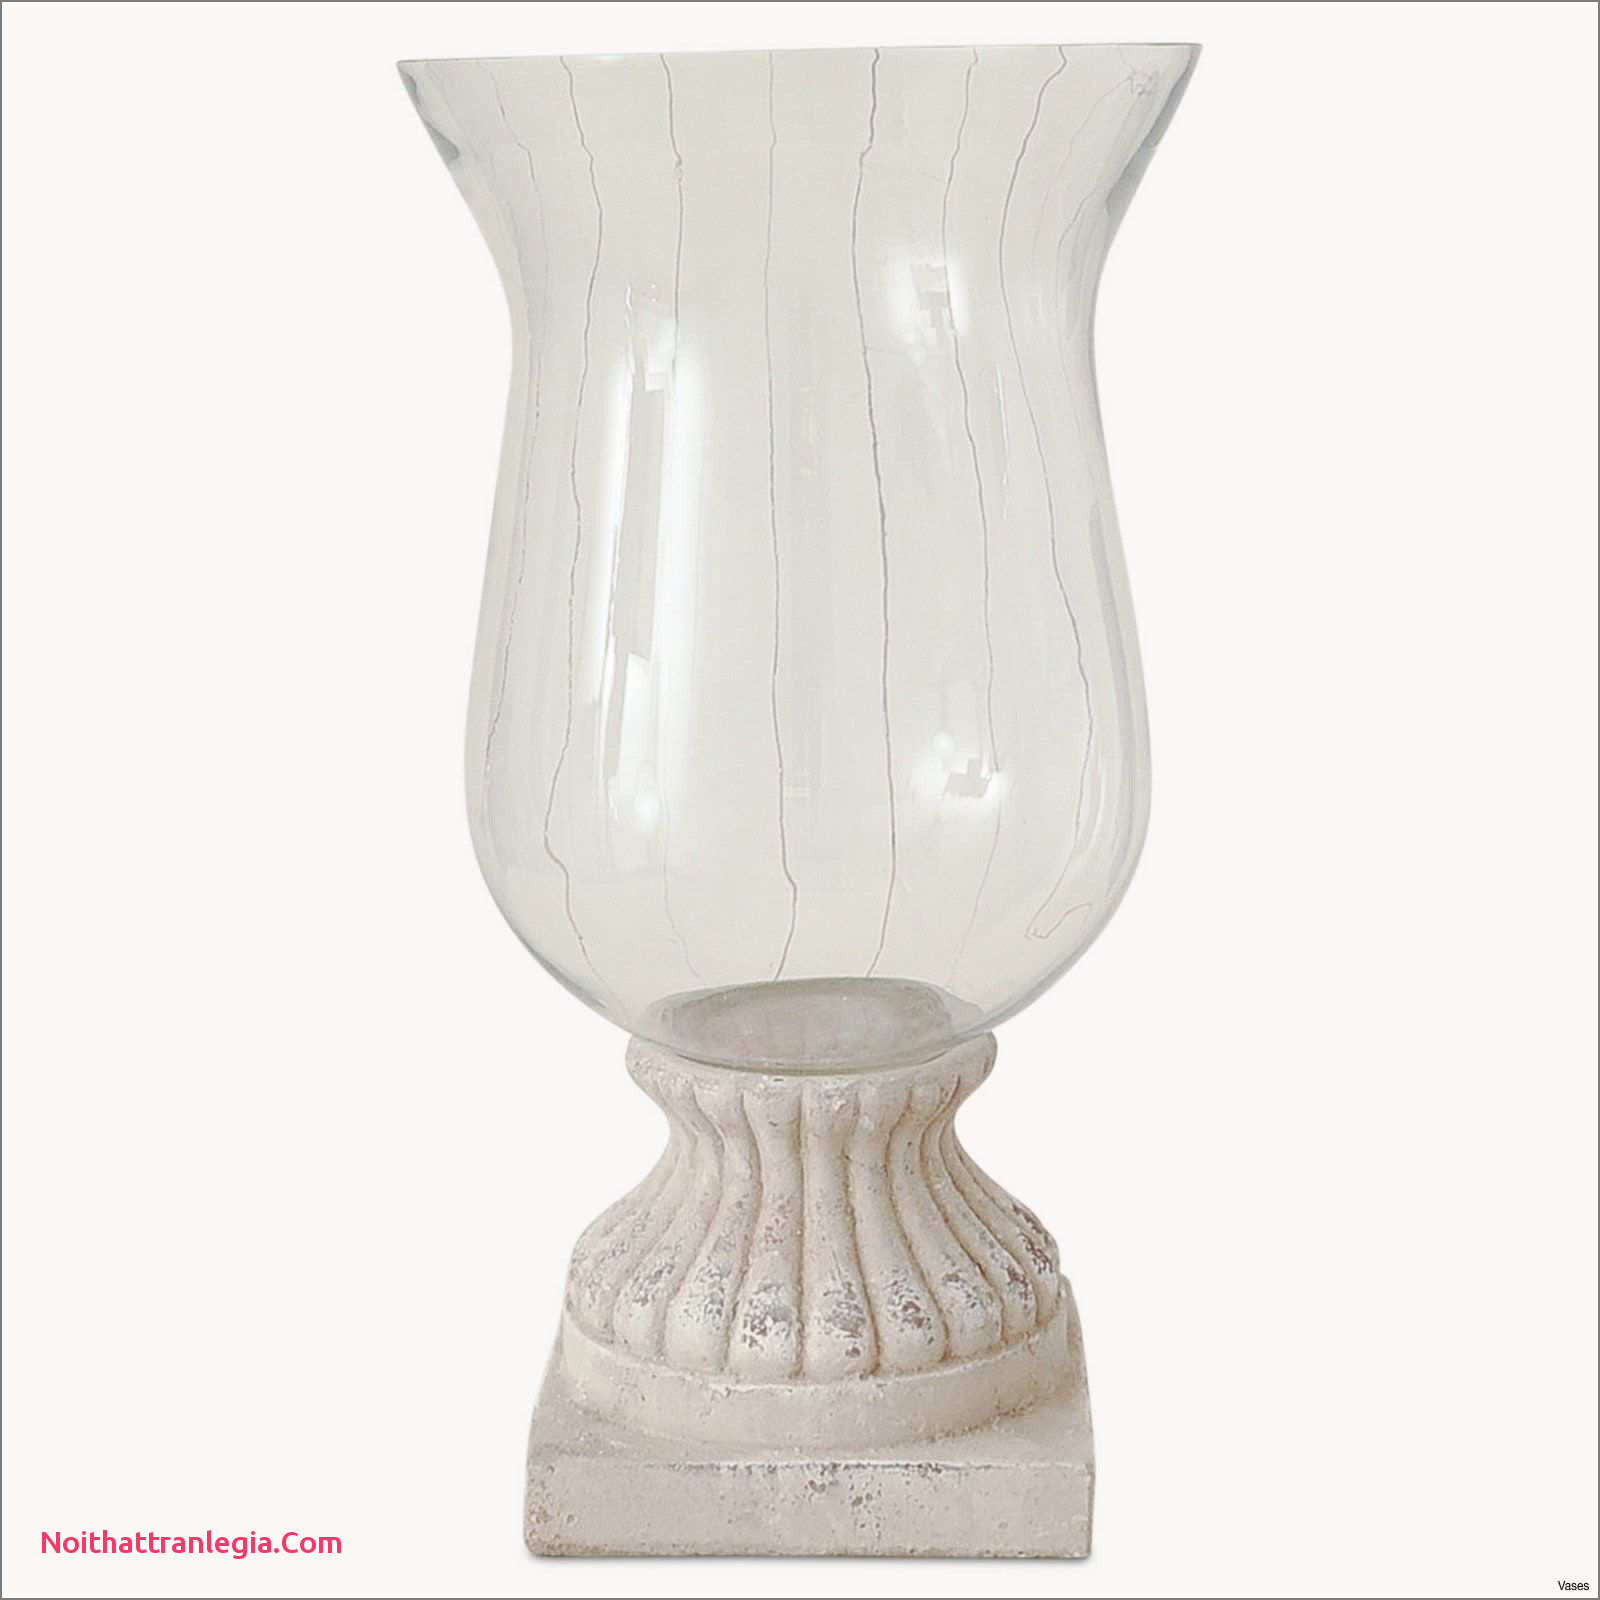 11 Great Vases for Sale Online 2021 free download vases for sale online of 20 how to make mercury glass vases noithattranlegia vases design with regard to vase lighting base gallery gold table lamp base fresh how to make a table lamp 10h